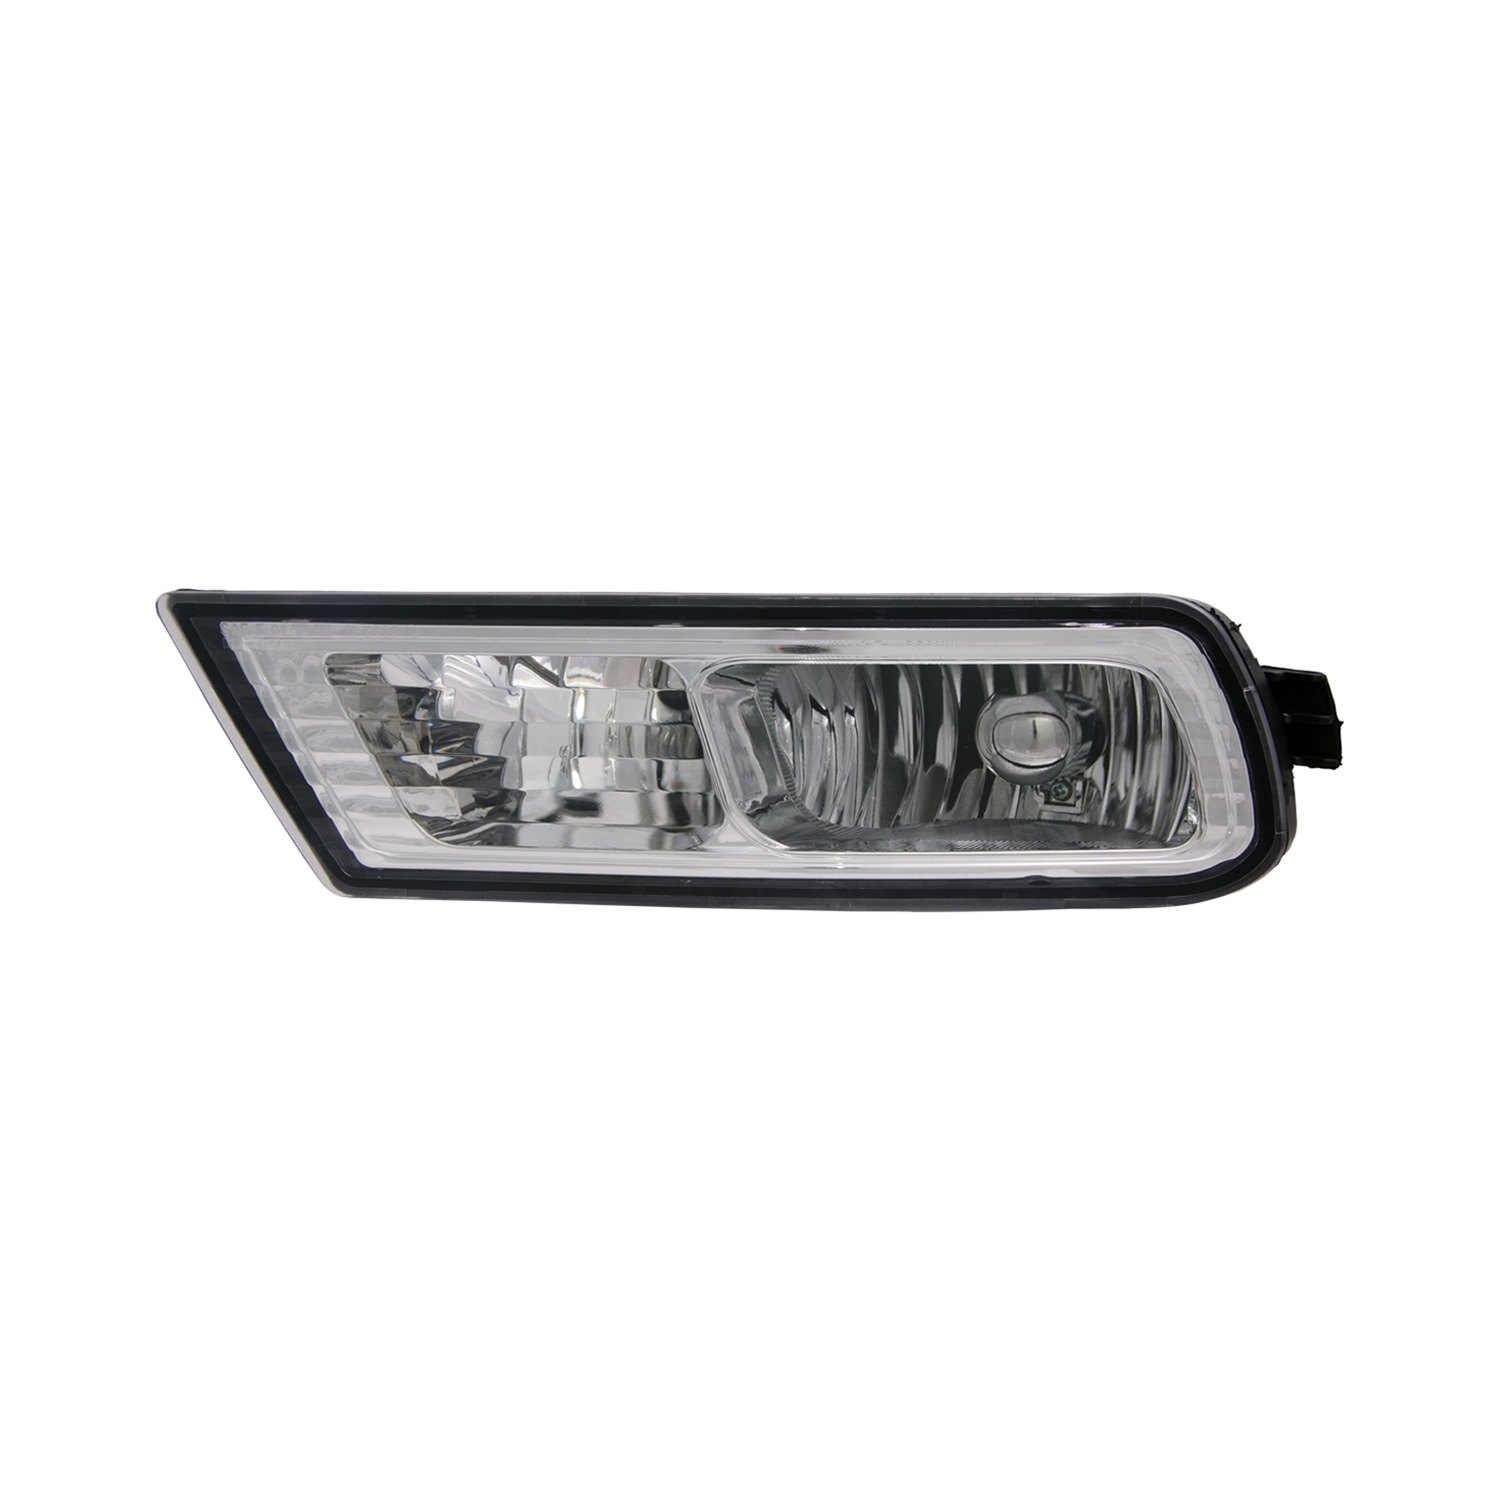 Acura MDX 2012 Replacement Fog Light